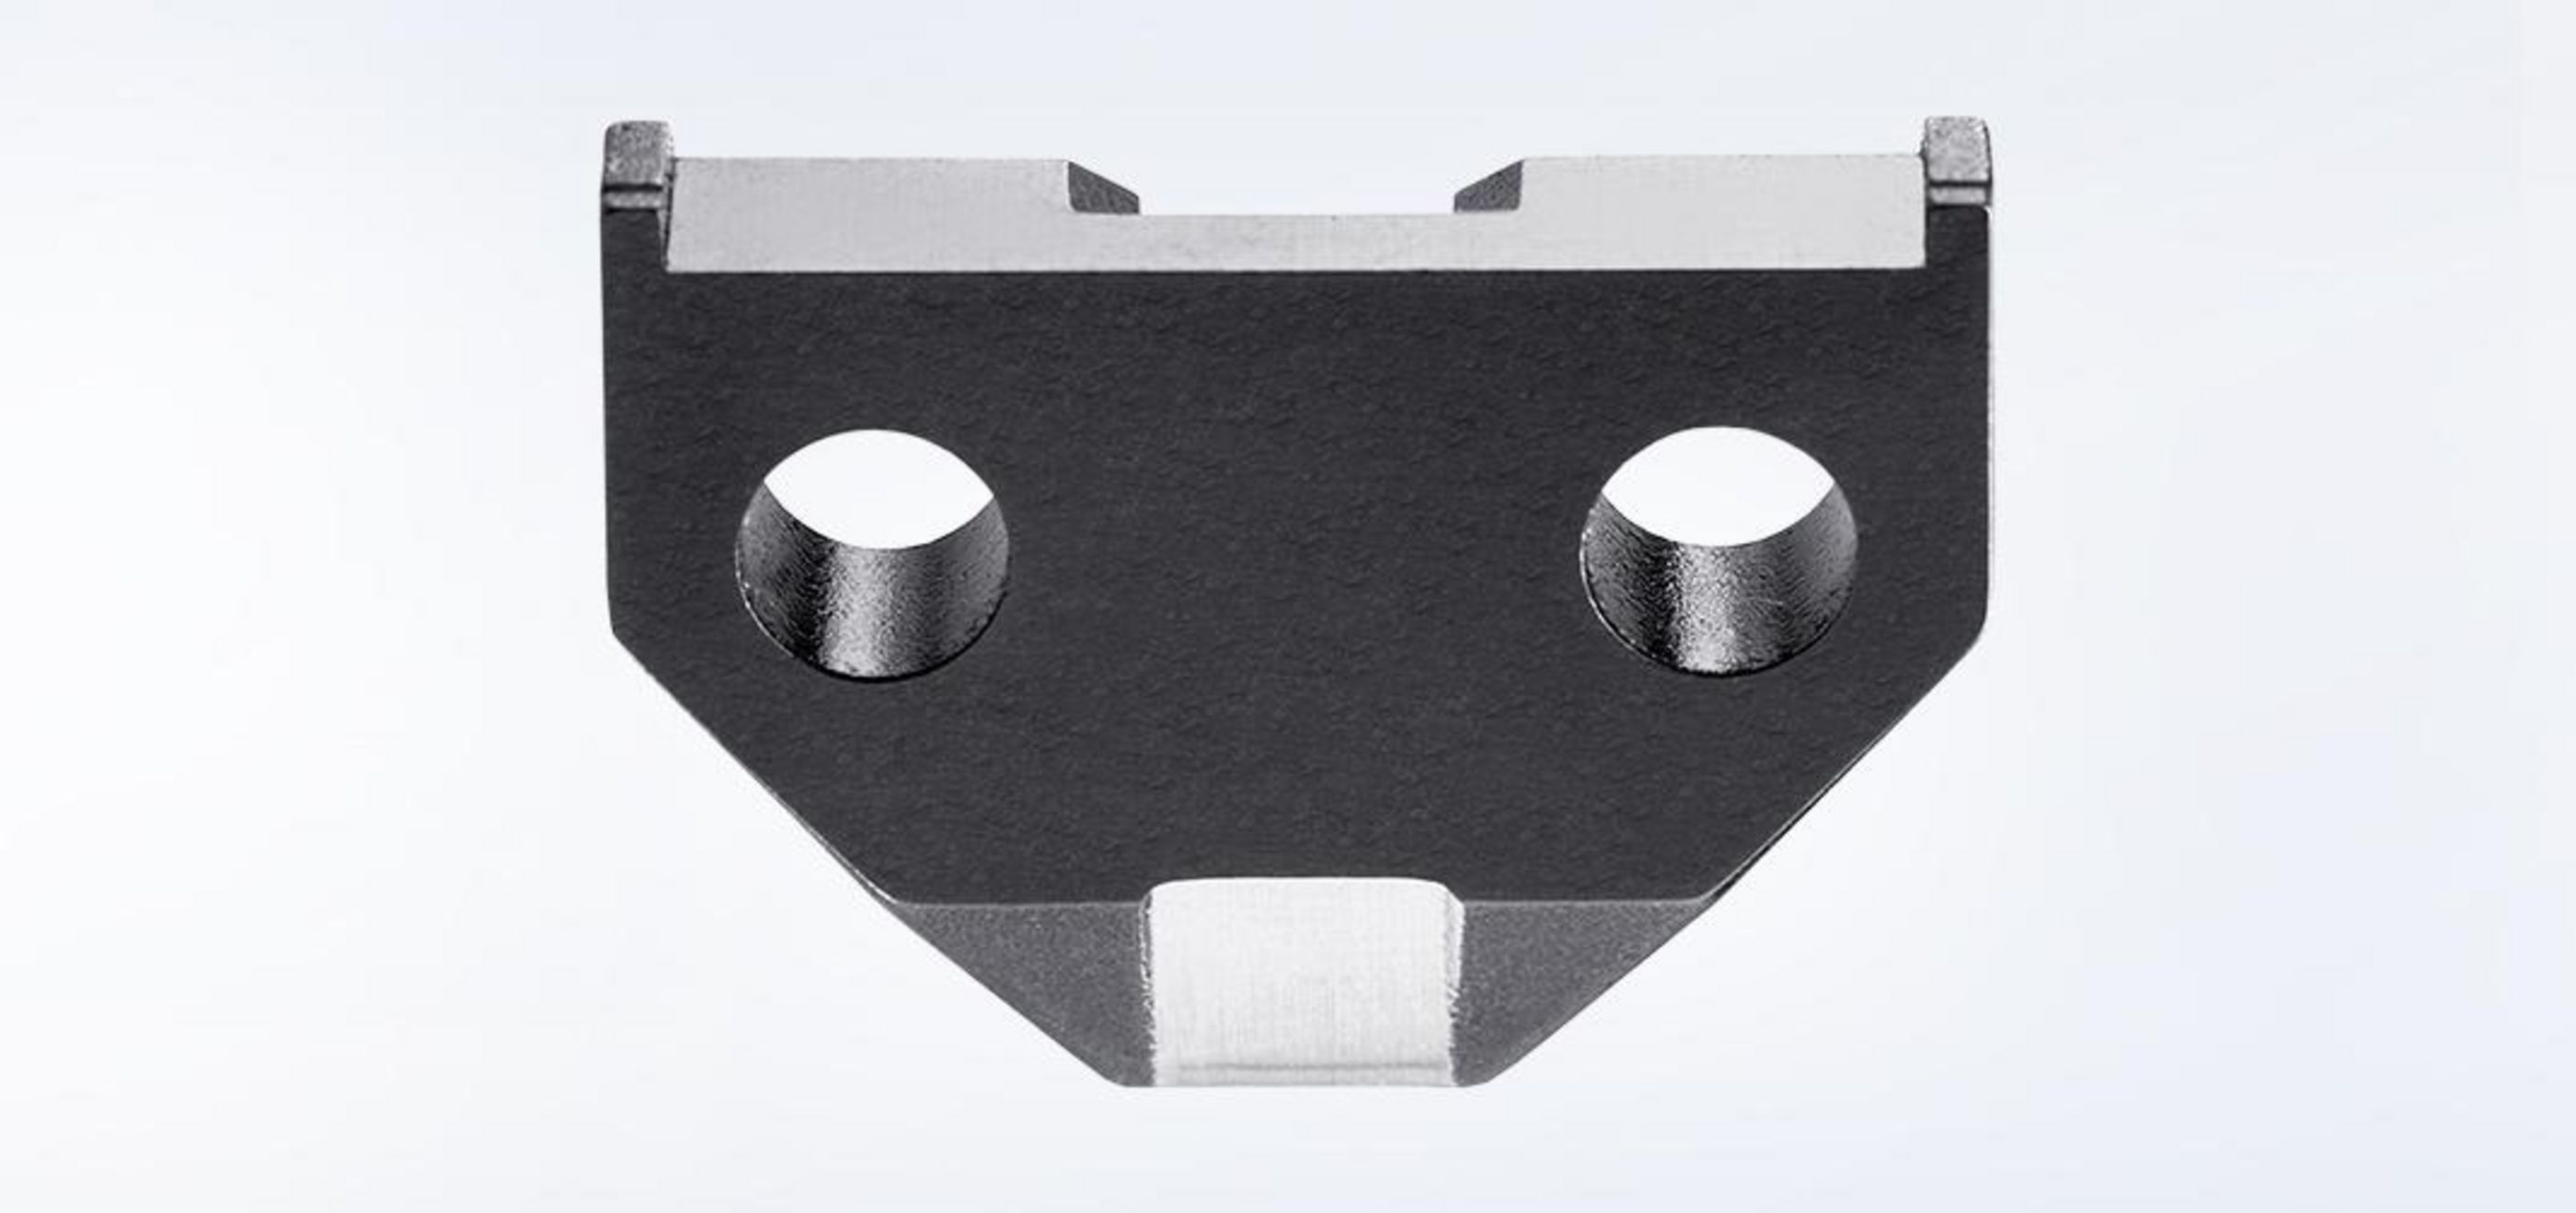 TruTool PN 200 / 201, punch guide